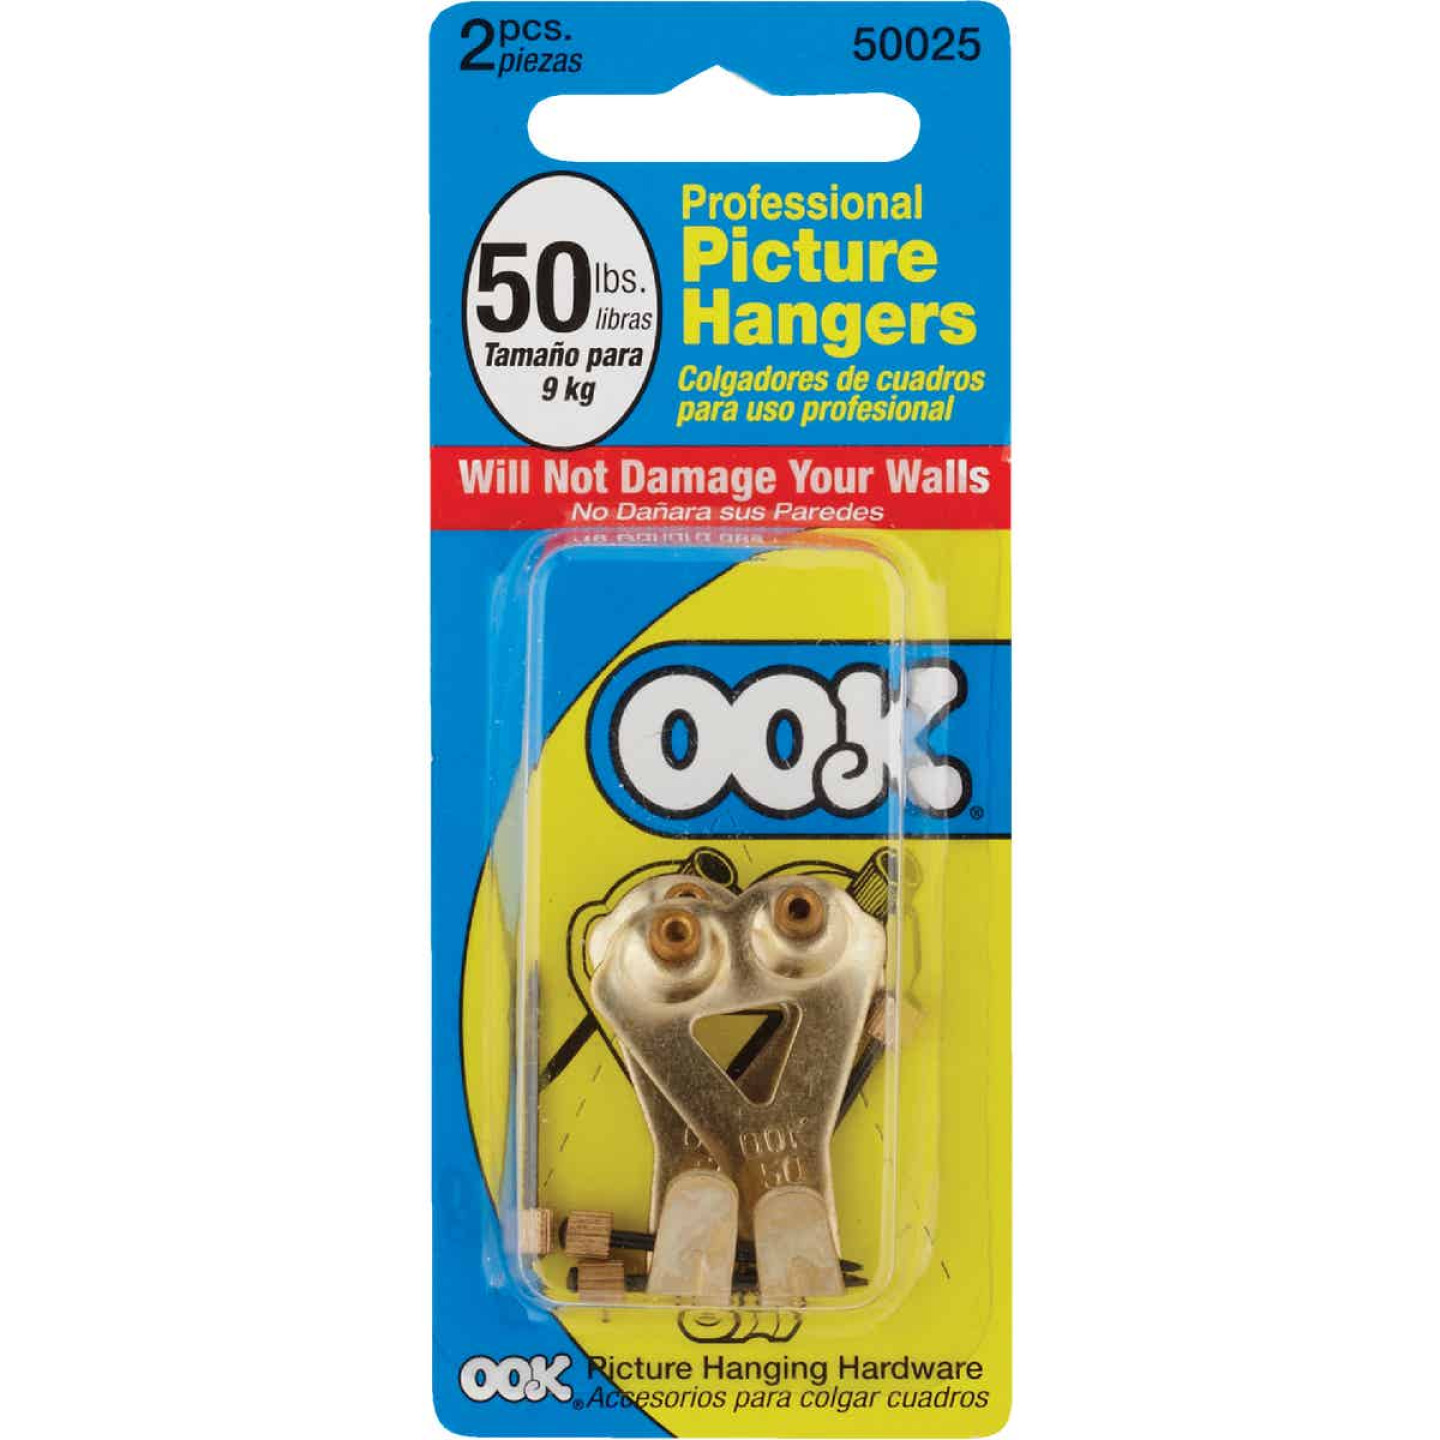 Hillman OOK 50 Lb. Capacity Shield Picture Hanger (2 Count) Image 2